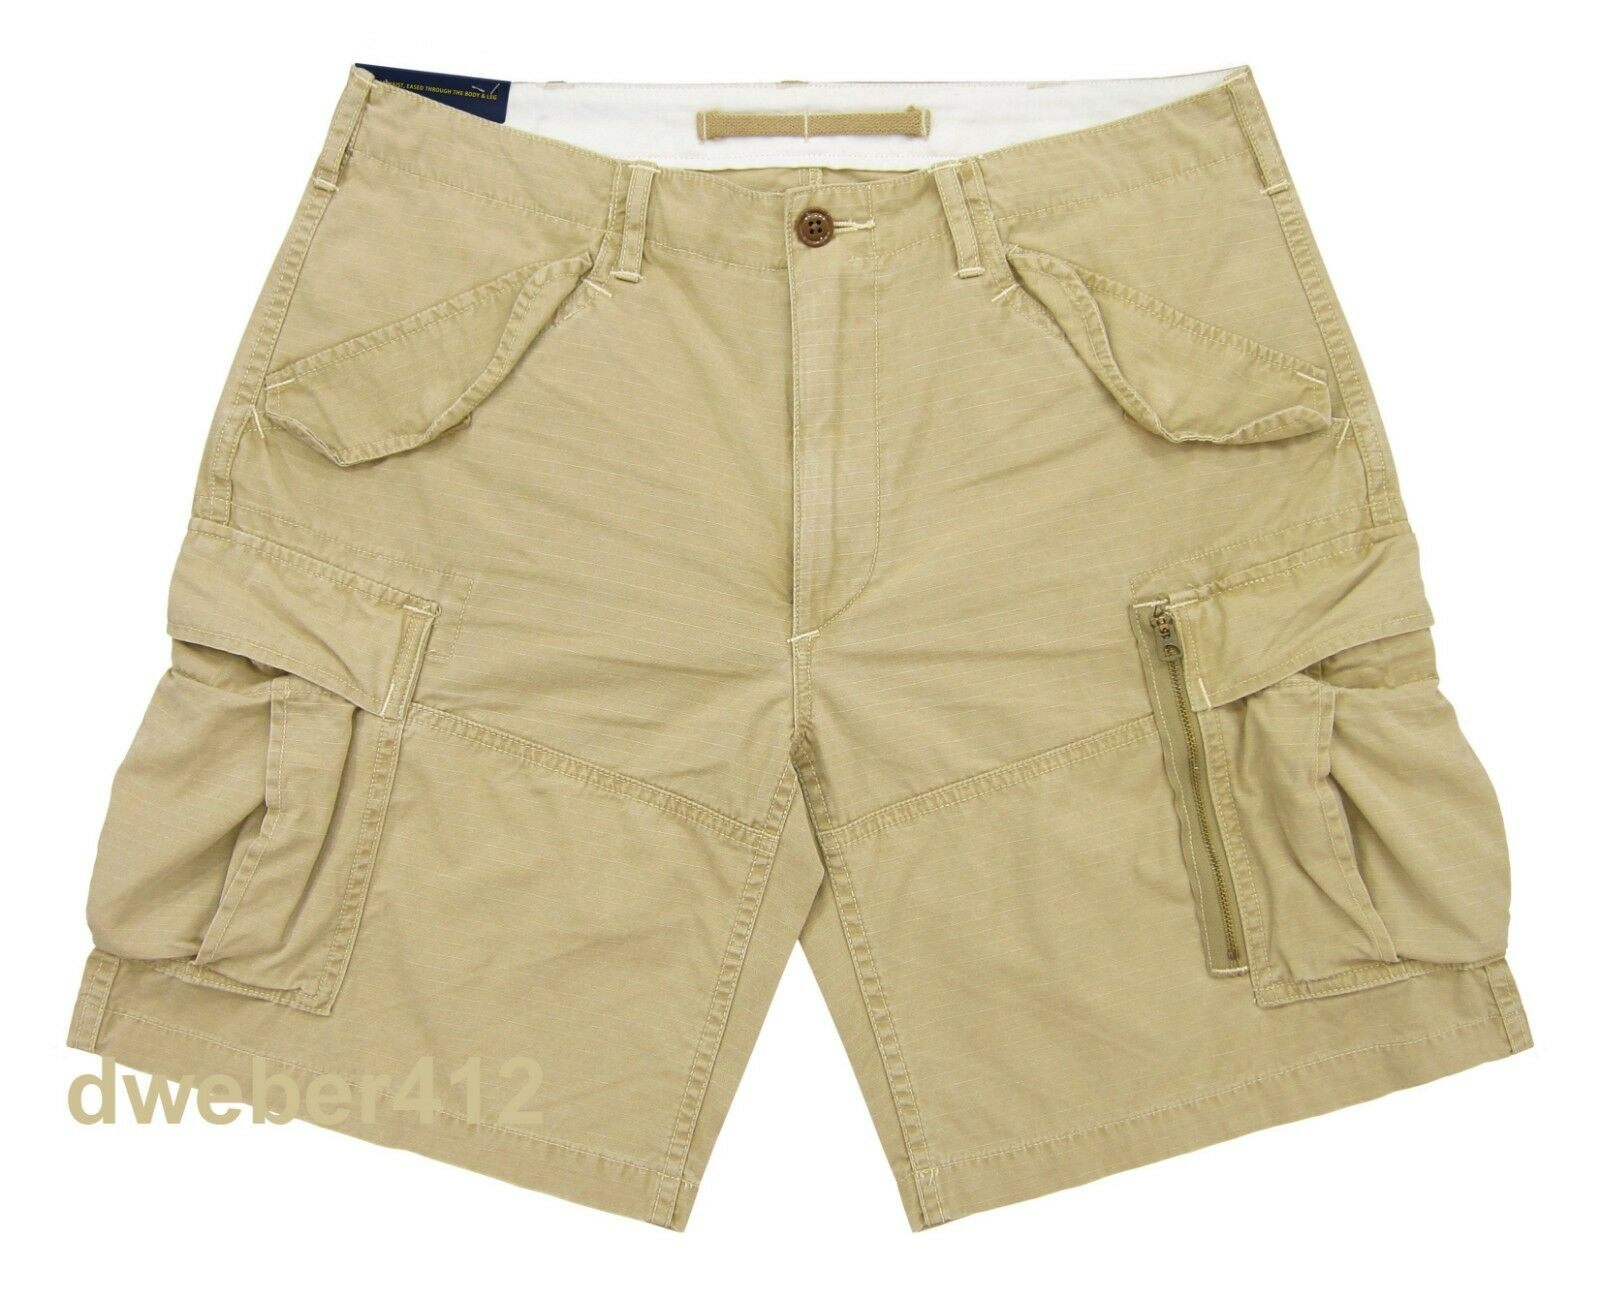 Men Polo Ralph Lauren BIG & TALL CLASSIC FIT Beige RIPSTOP Military Cargo Shorts